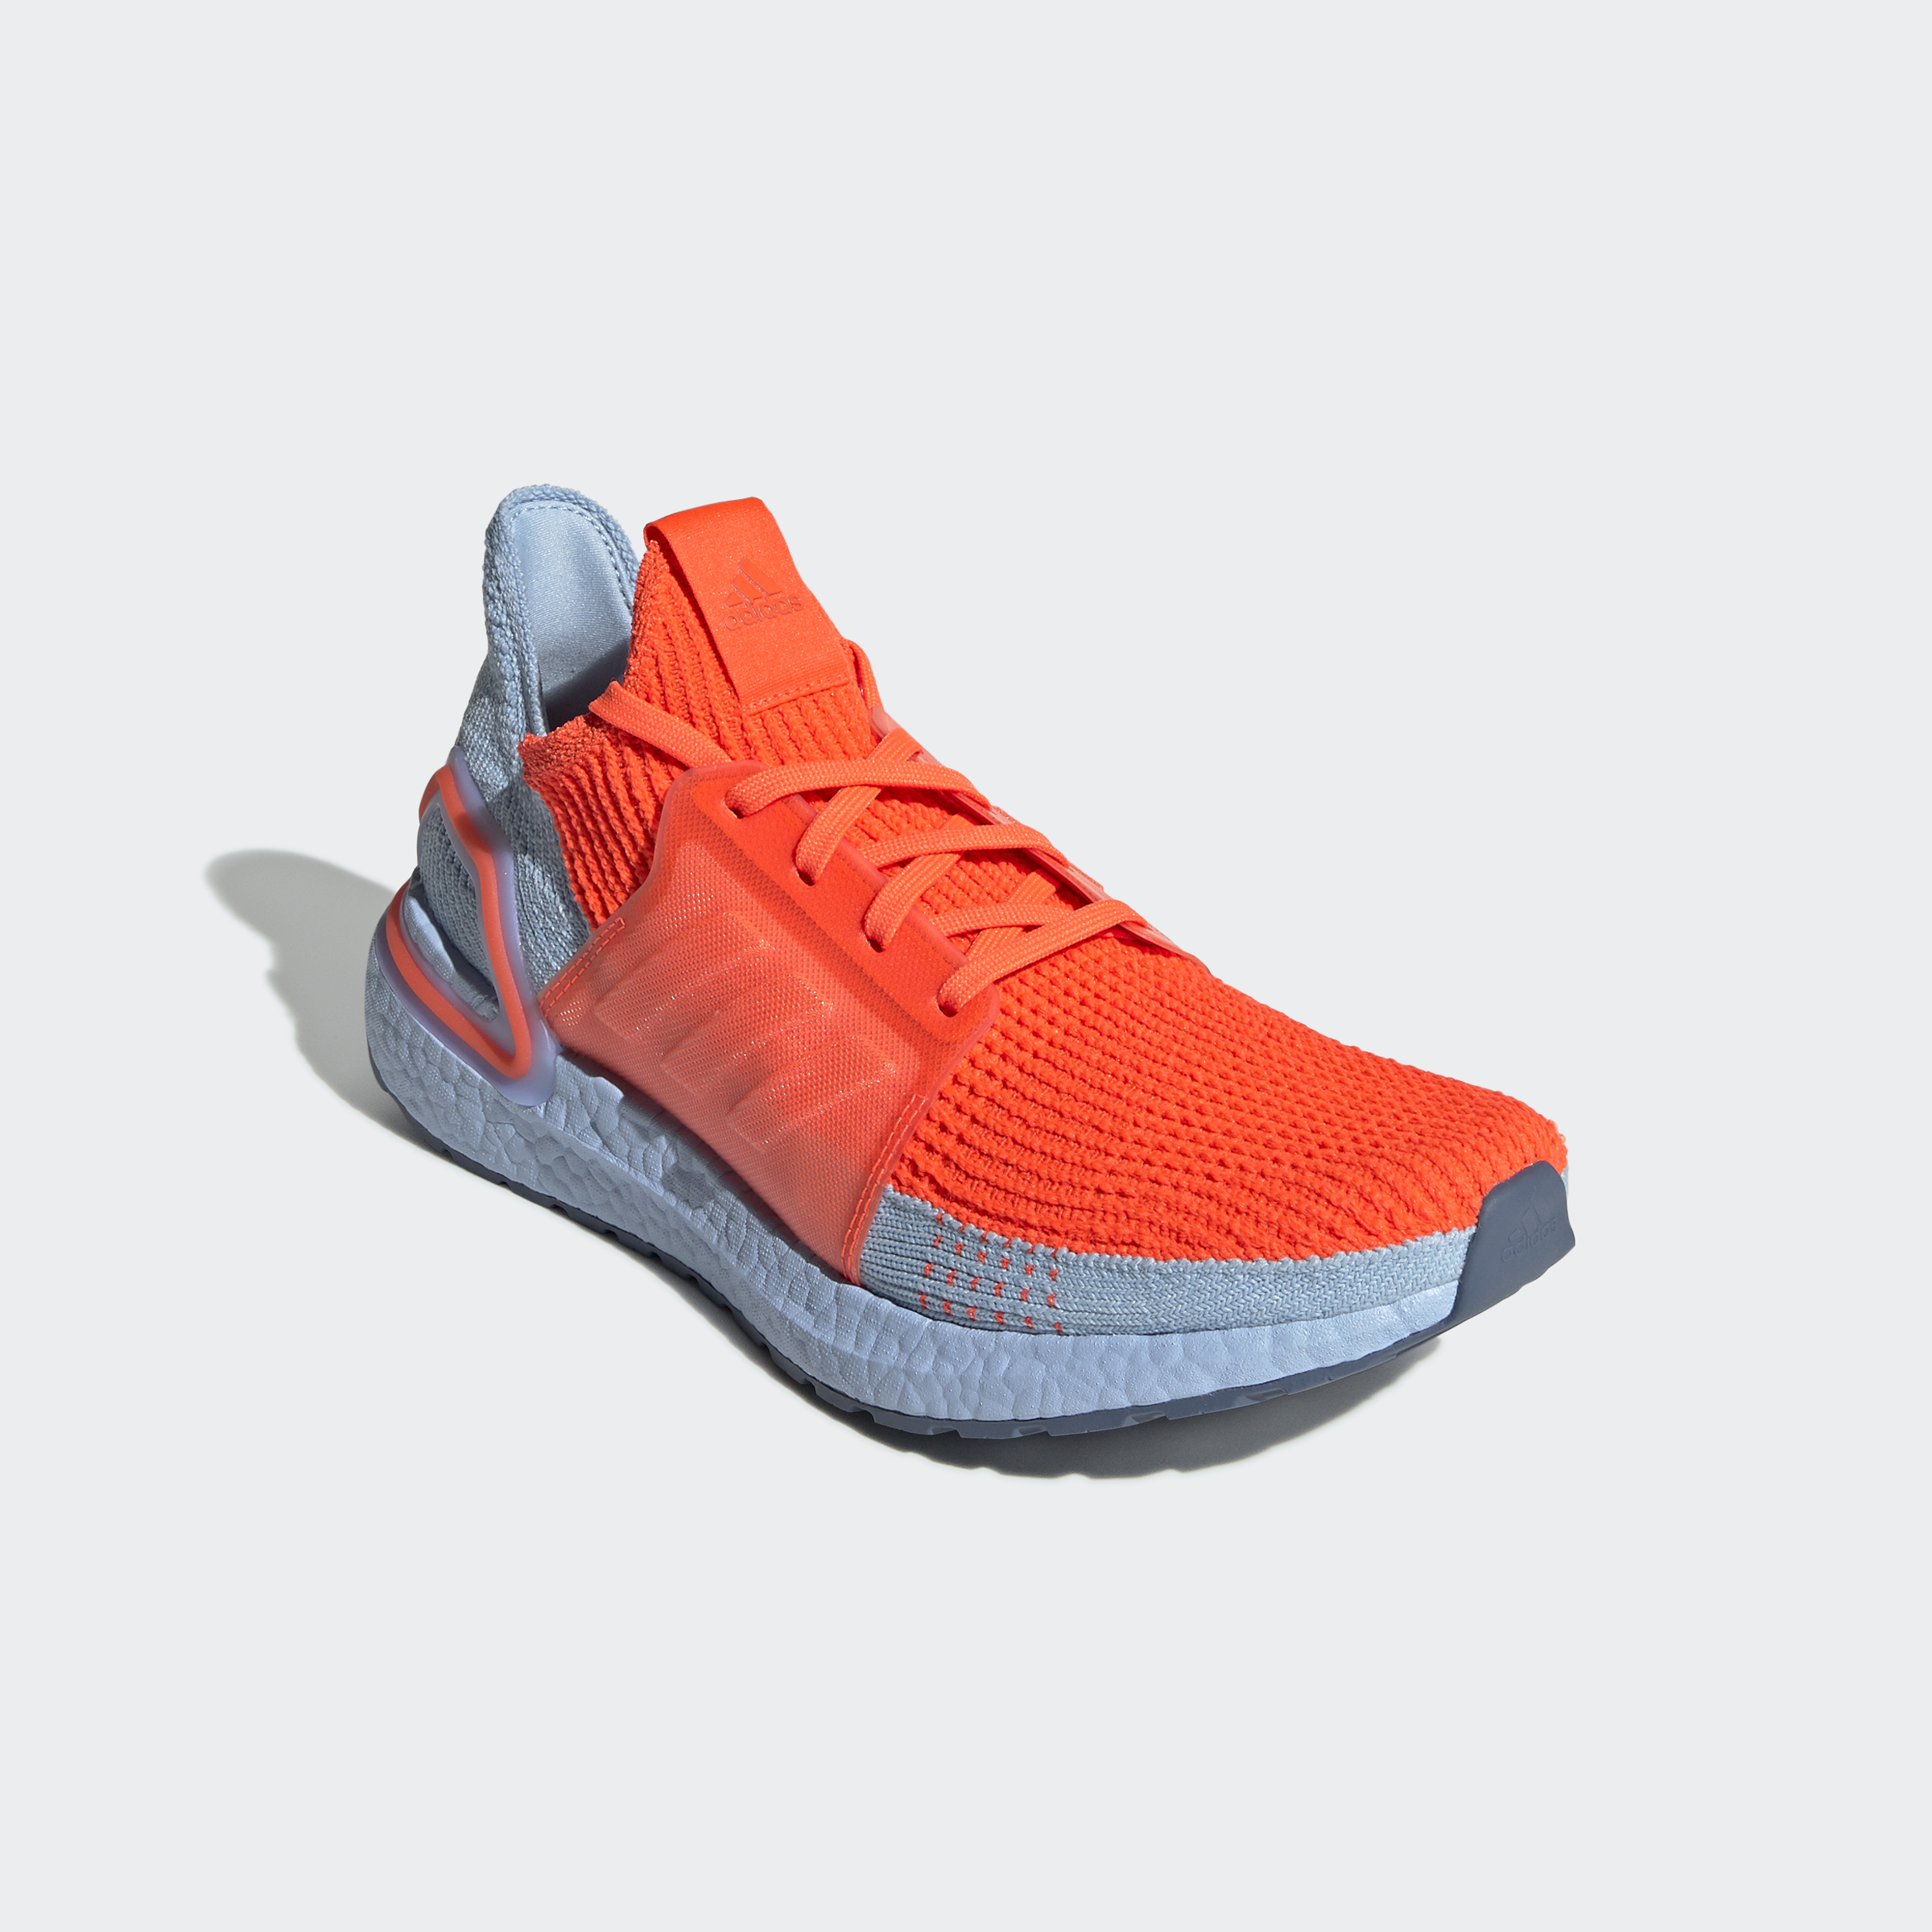 adidas-Ultraboost-19-Shoes-Athletic-amp-Sneakers thumbnail 79